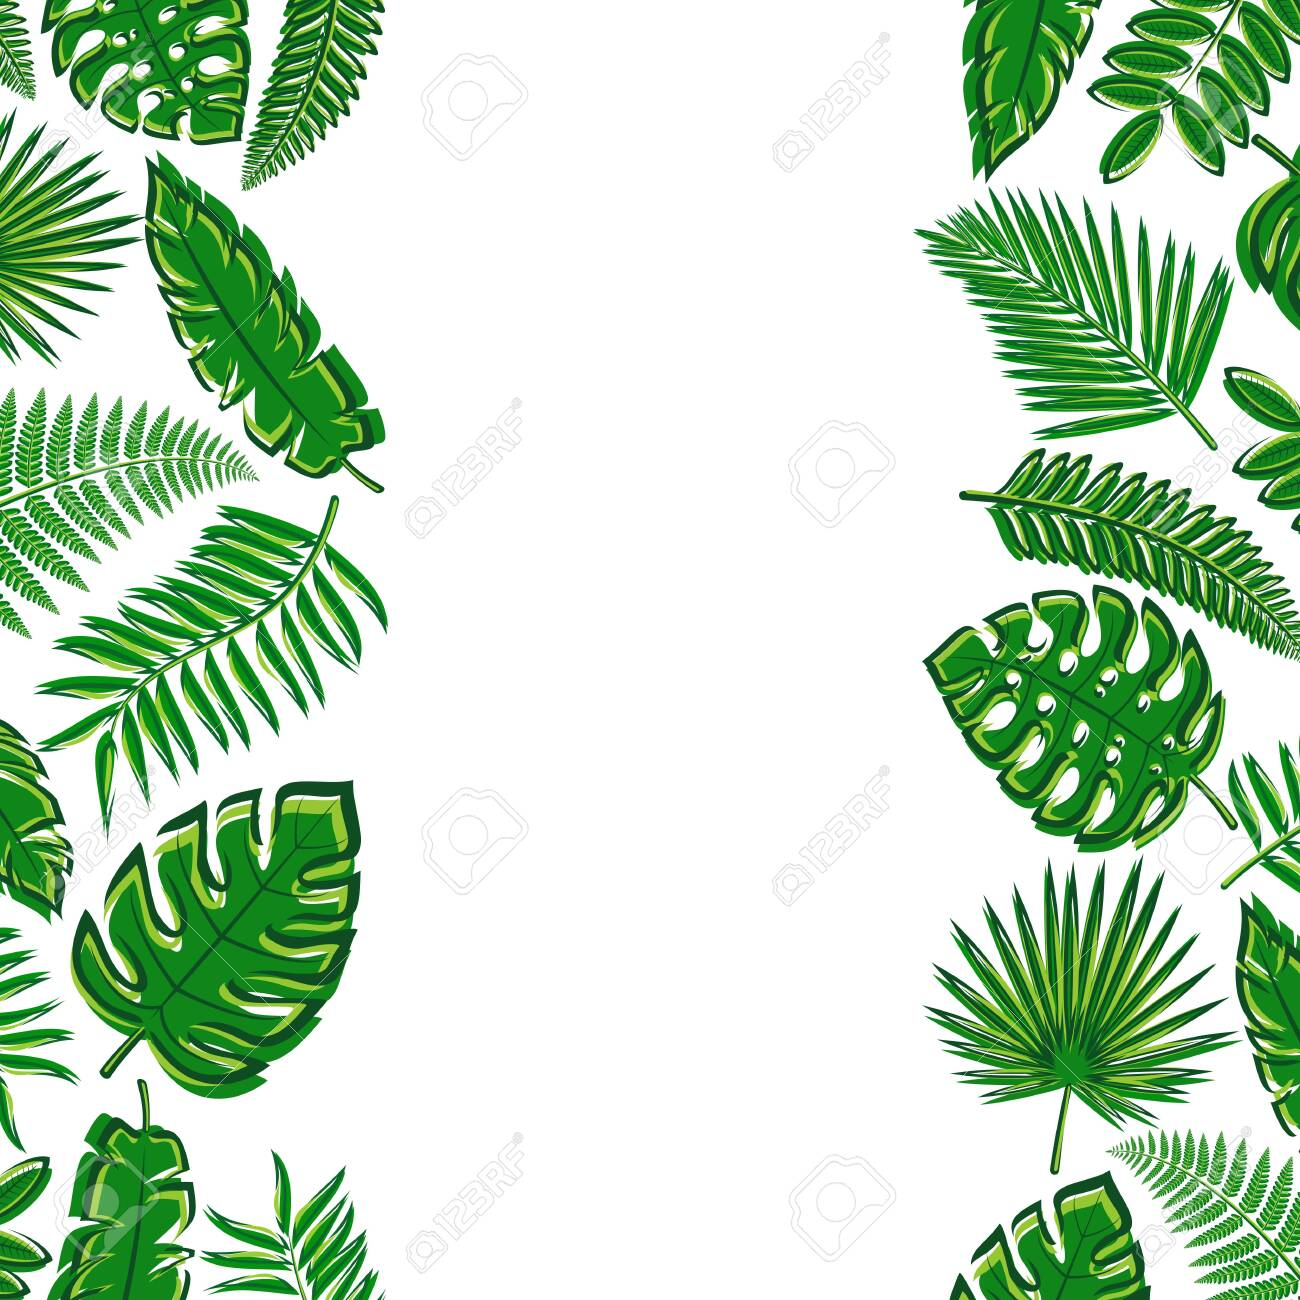 Tropical Leaves Background Collection Icon Tropical Leaves Royalty Free Cliparts Vectors And Stock Illustration Image 129002778 Скачайте векторную иллюстрацию vector tropical leaves and flowers icon set isolated on transparency grid background palm banana leaf hibiscus and plumeria flowers jungle. tropical leaves background collection icon tropical leaves